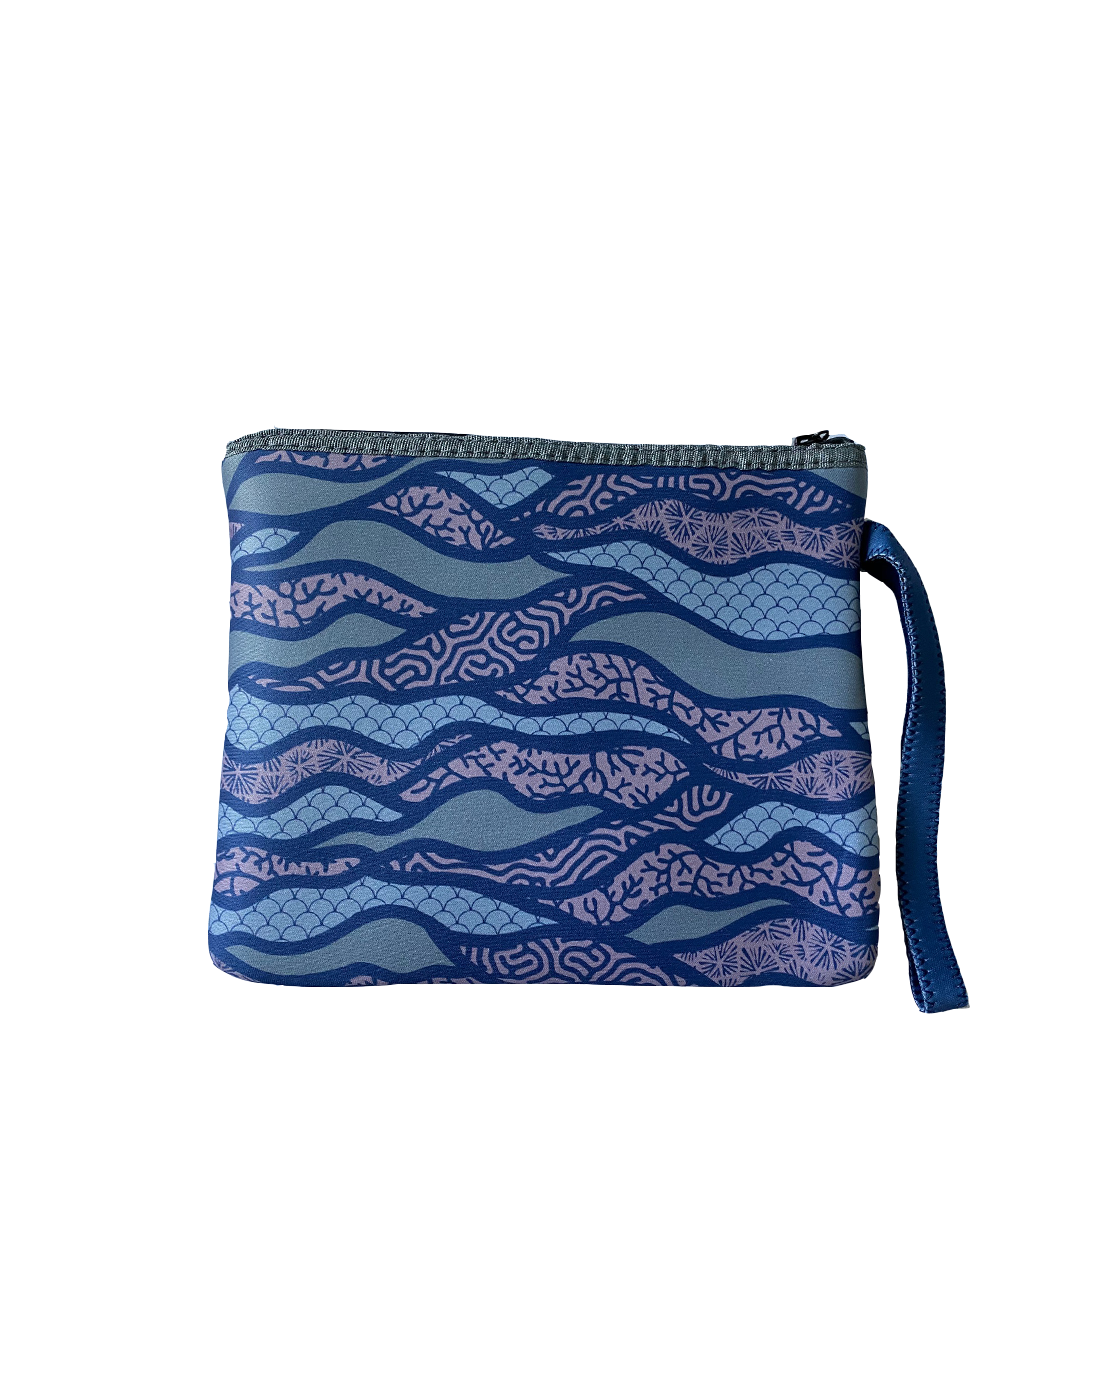 Pūkoʻa Splash-proof Neoprene Pouch